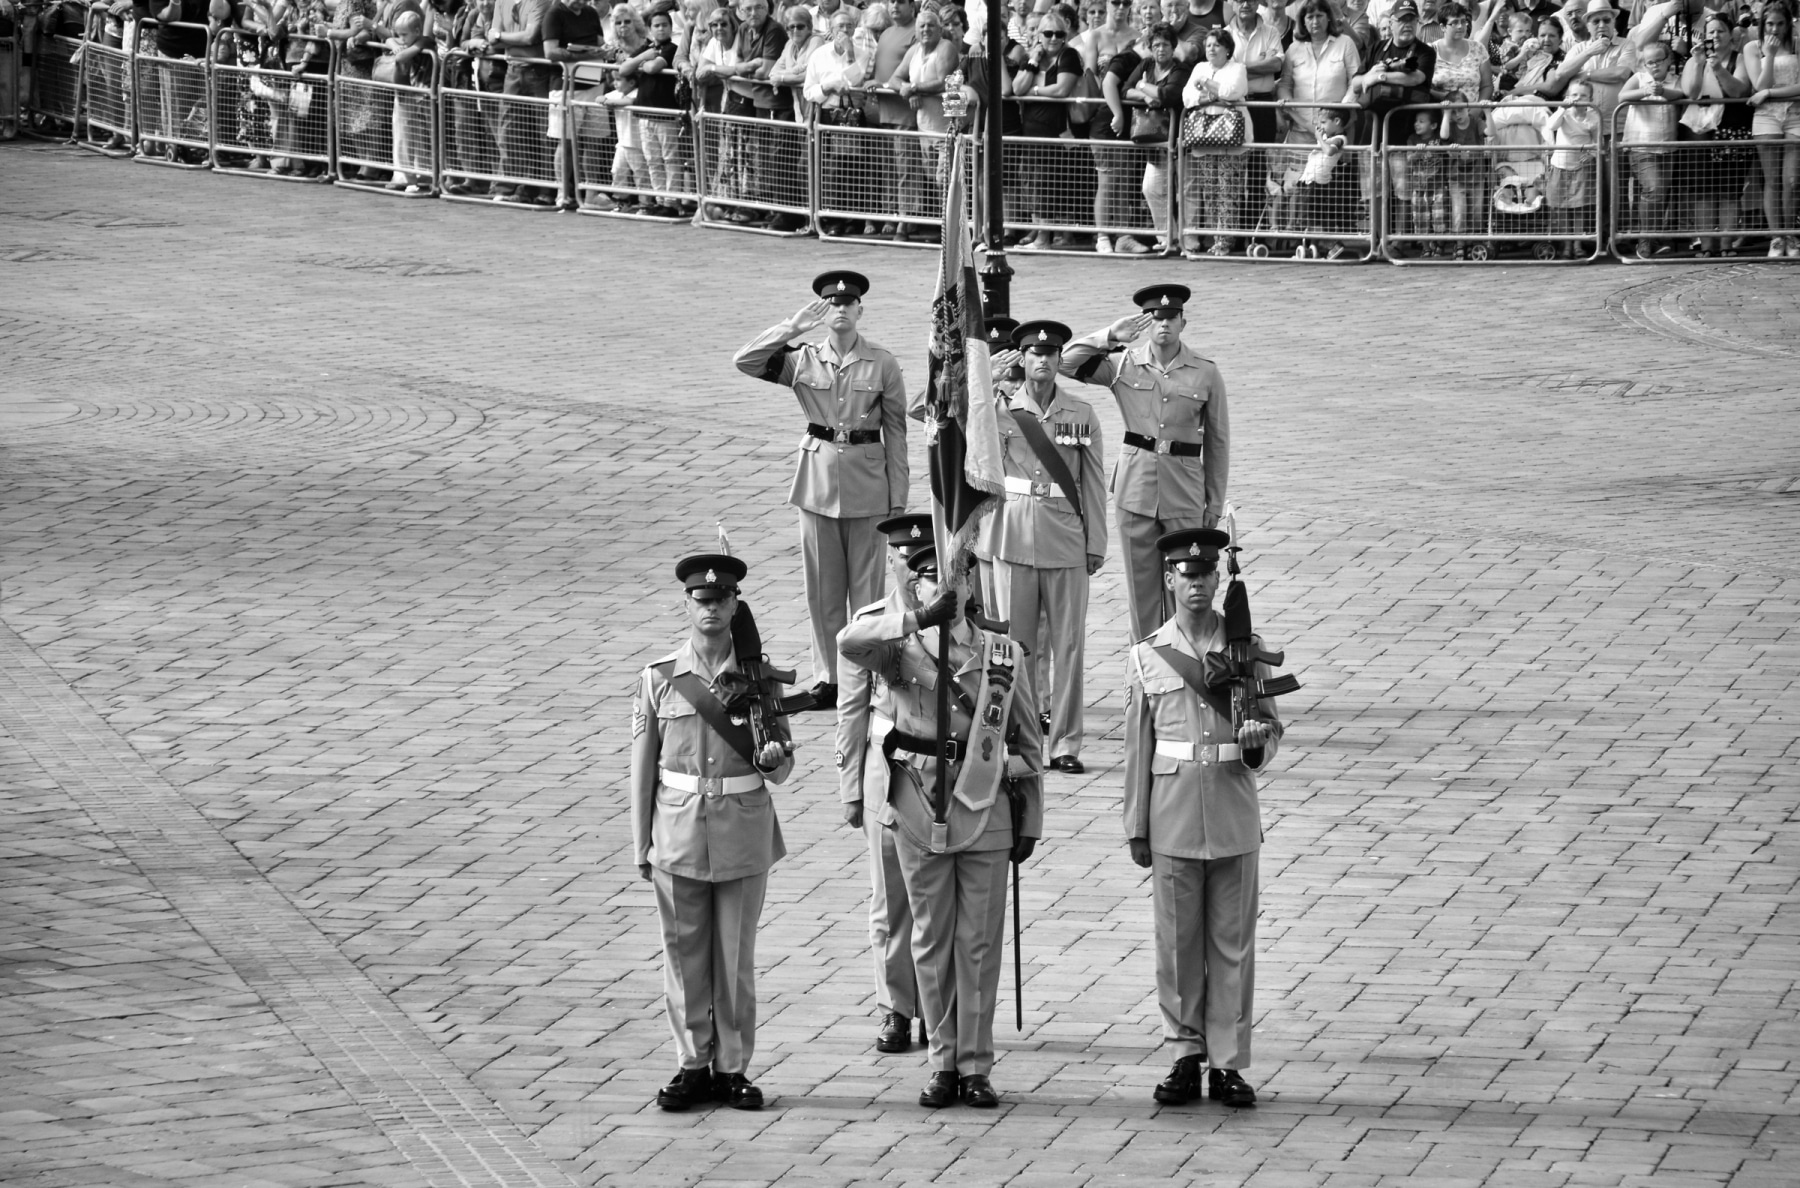 regiment-freedom-of-city-0245-bw_15253395837_o